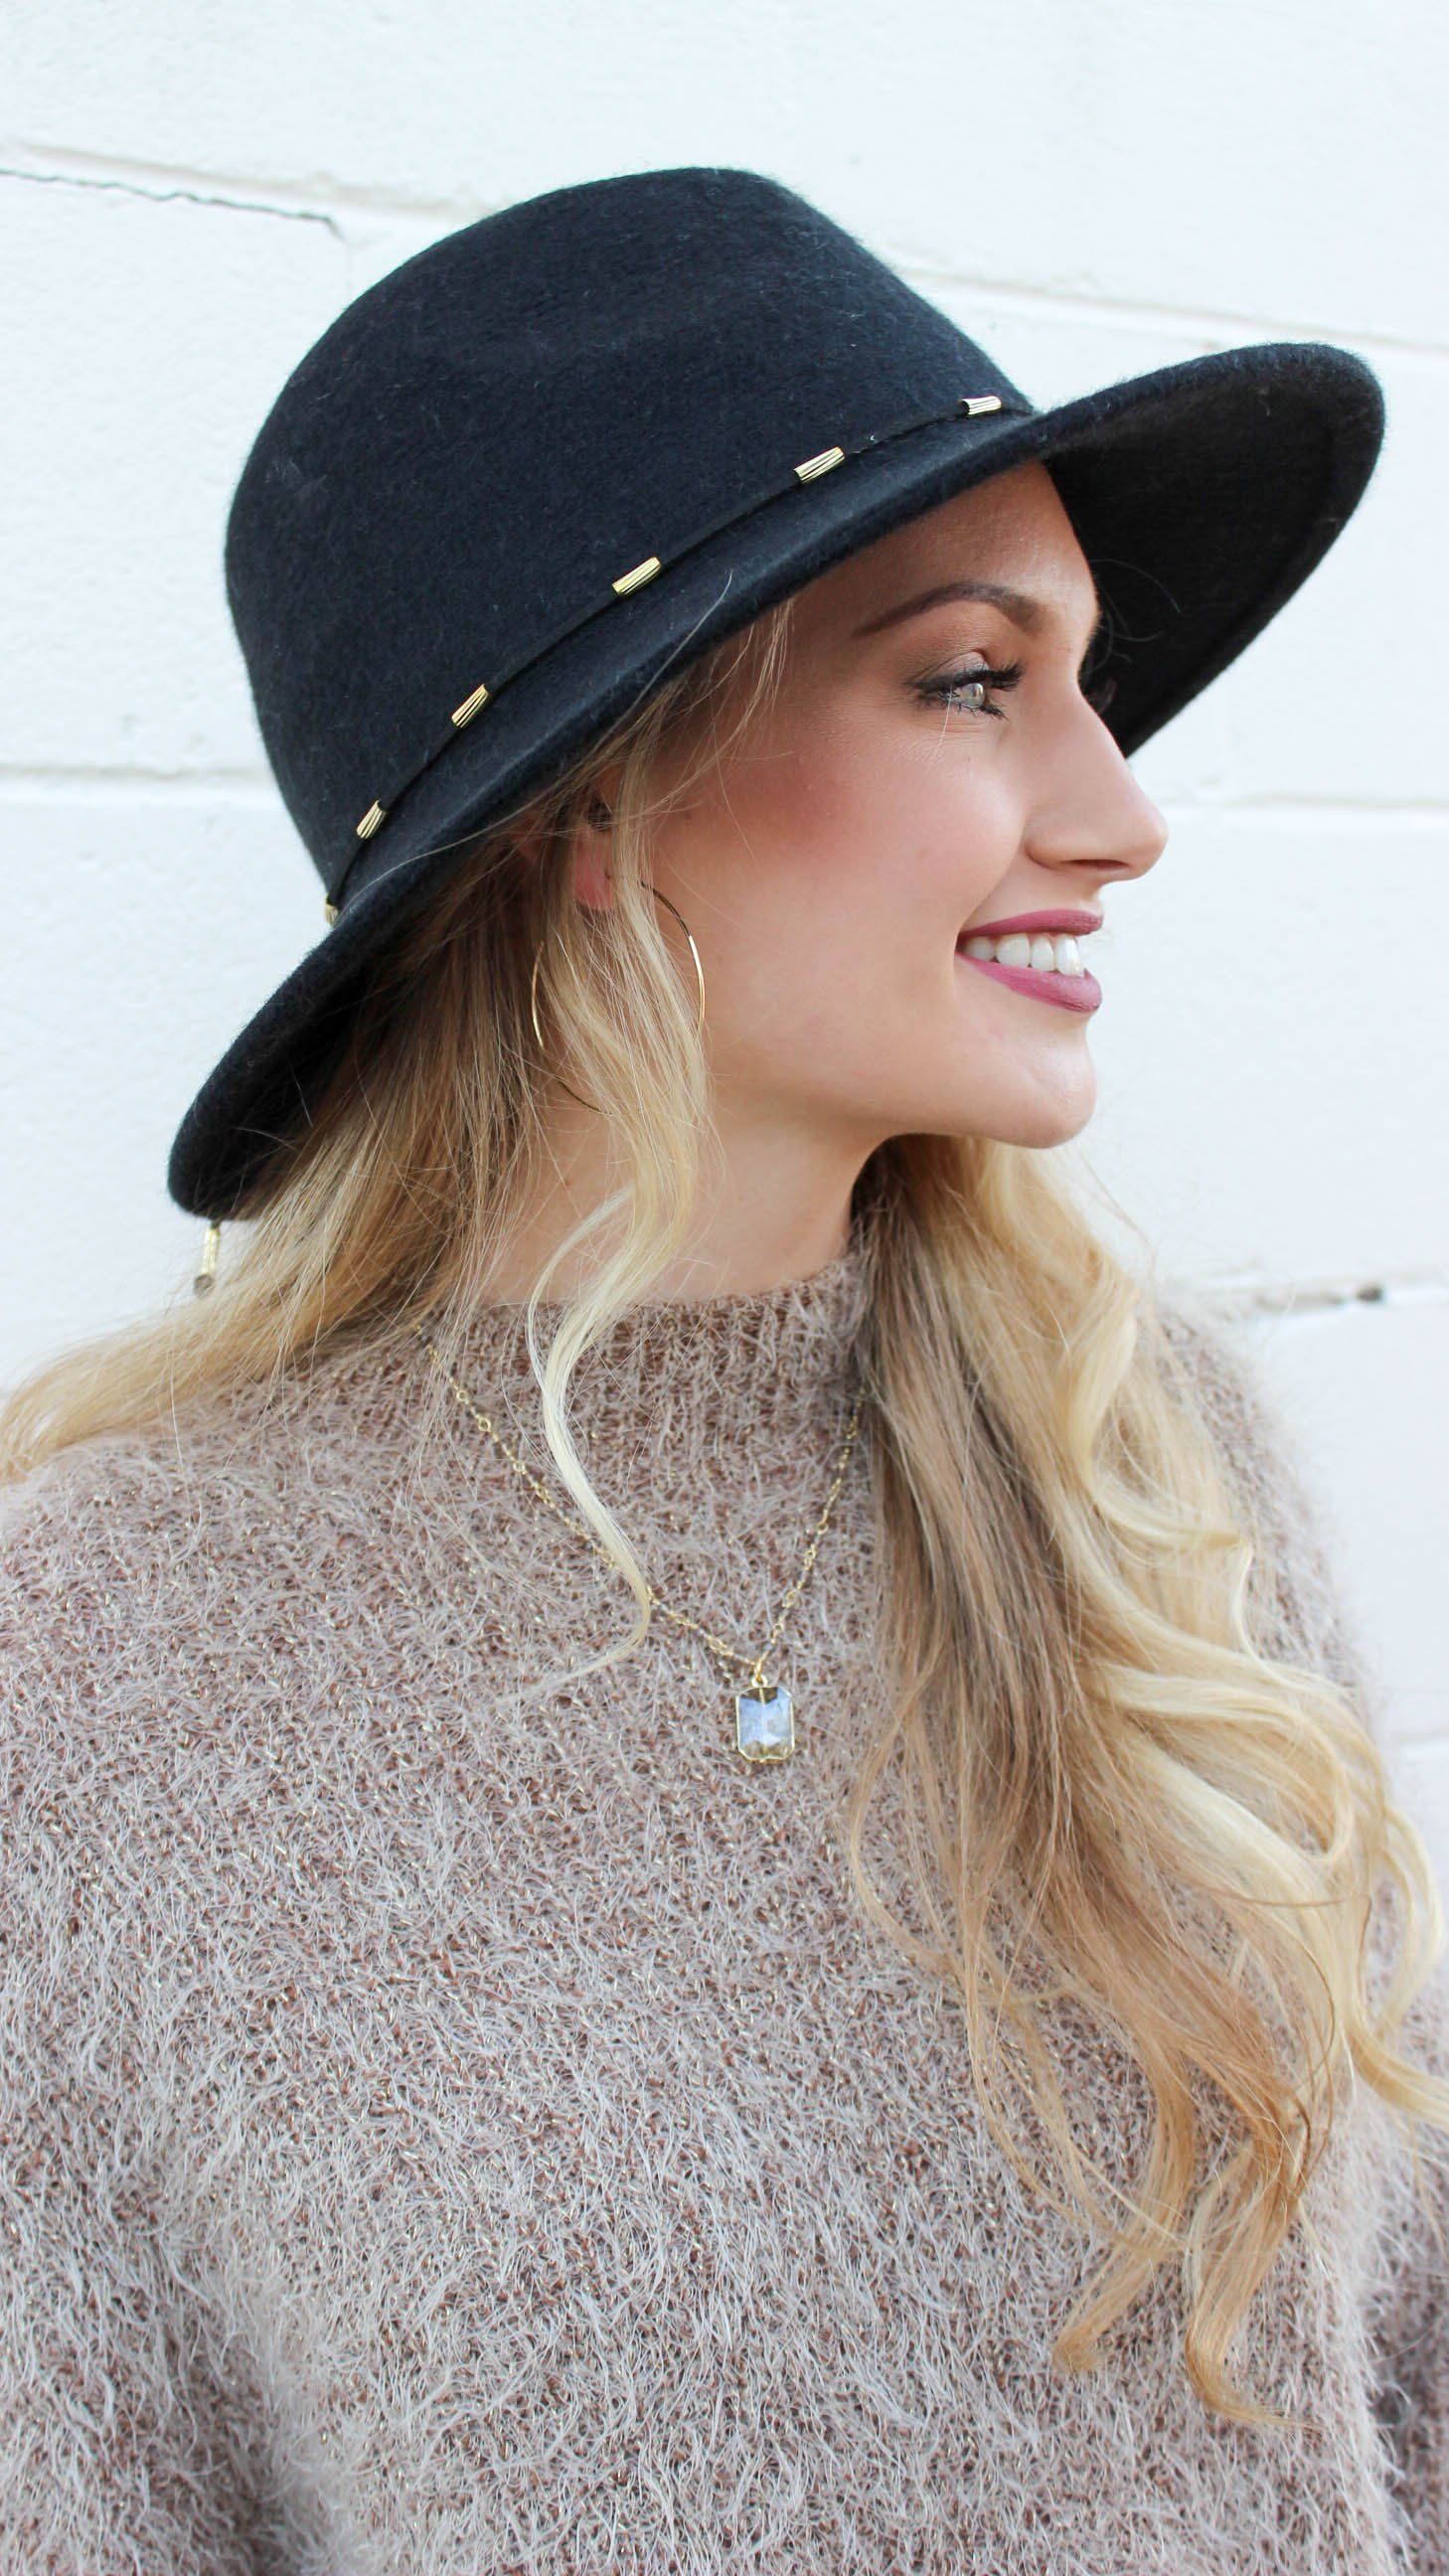 eddb46ea996e5 This classic Brixton-style wide brim hat is 100% wool with gold beaded  leather detailing to accent. Find your nearest coffee shop